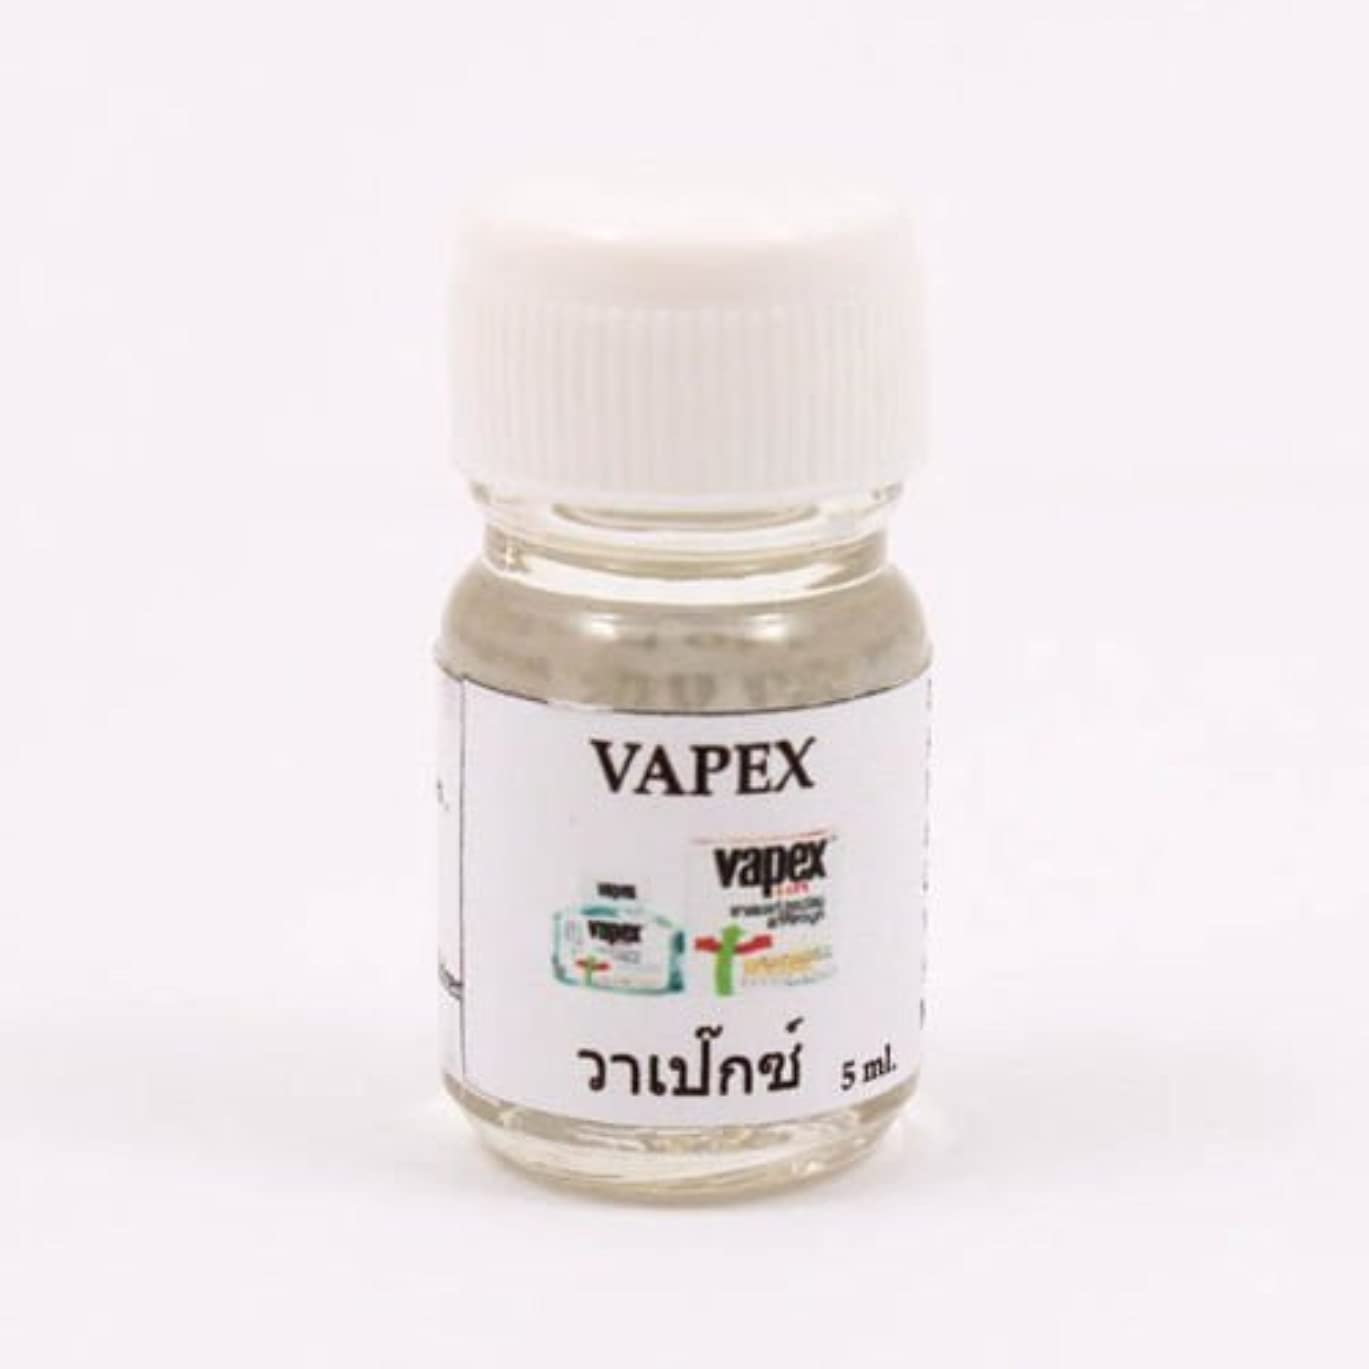 約束するによって非効率的な6X Vapex Aroma Fragrance Essential Oil 5ML. (cc) Diffuser Burner Therapy